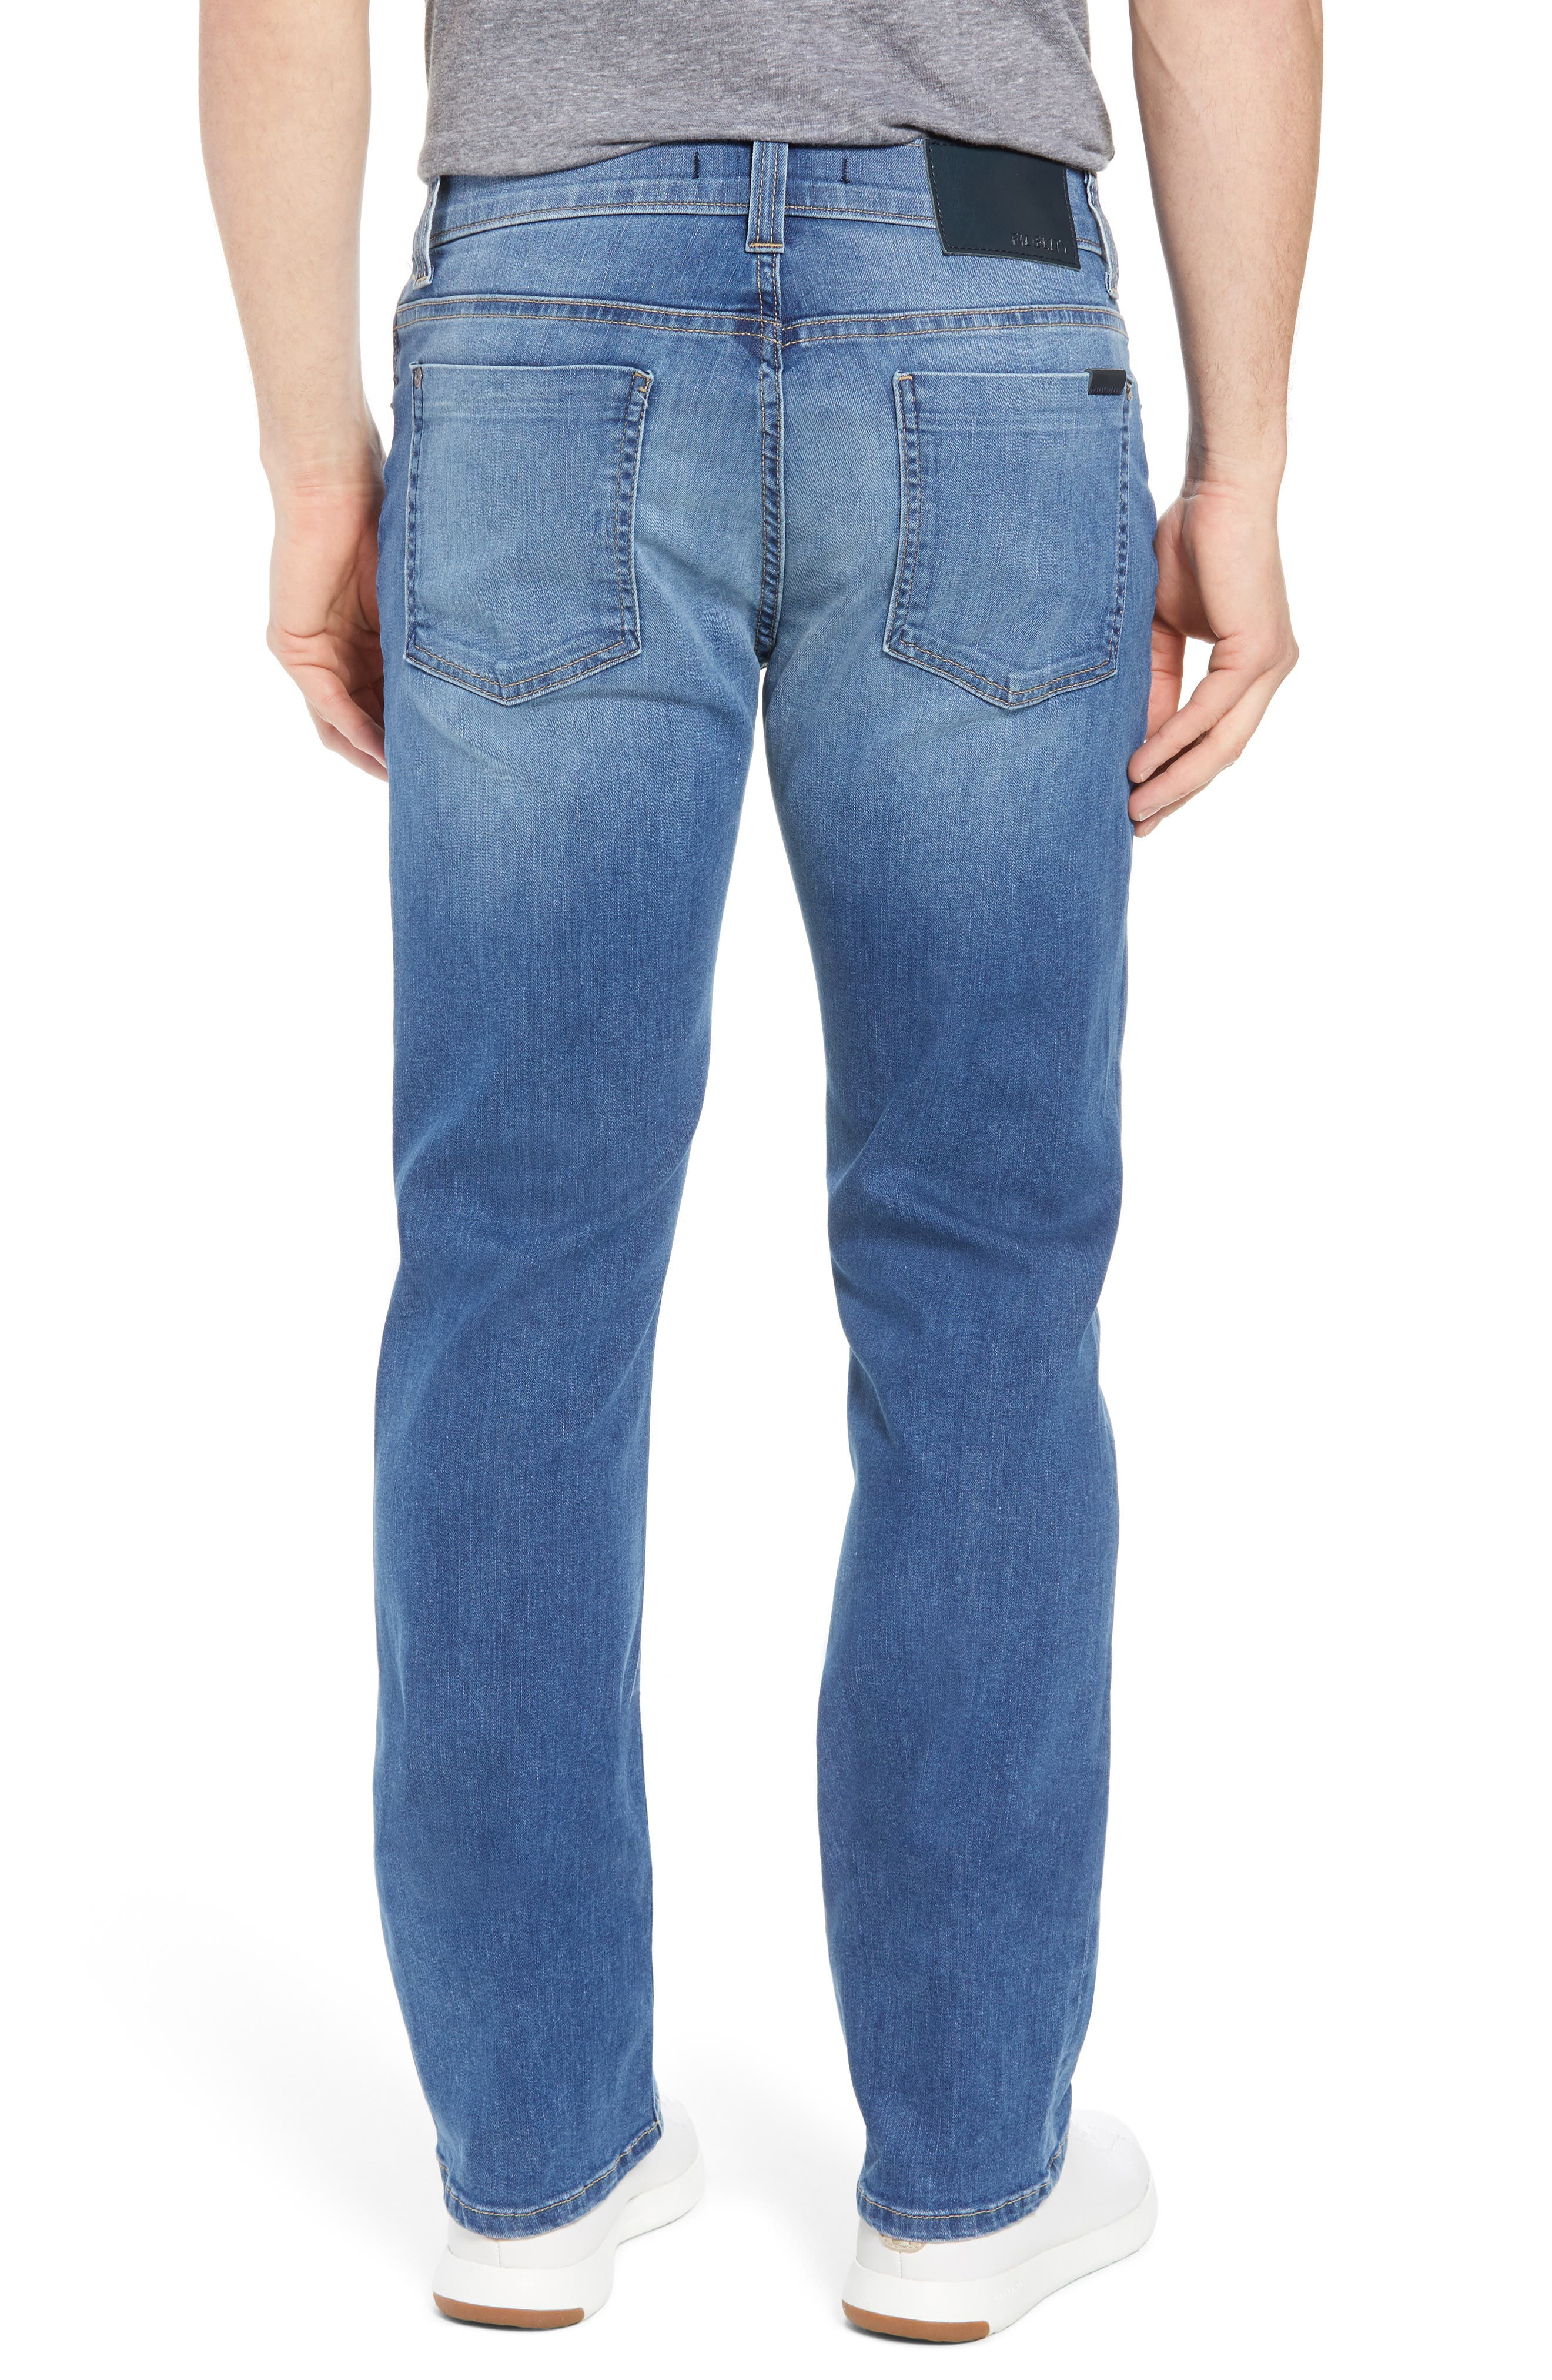 50-11 Relaxed Fit Jeans,                             Alternate thumbnail 2, color,                             Elysium